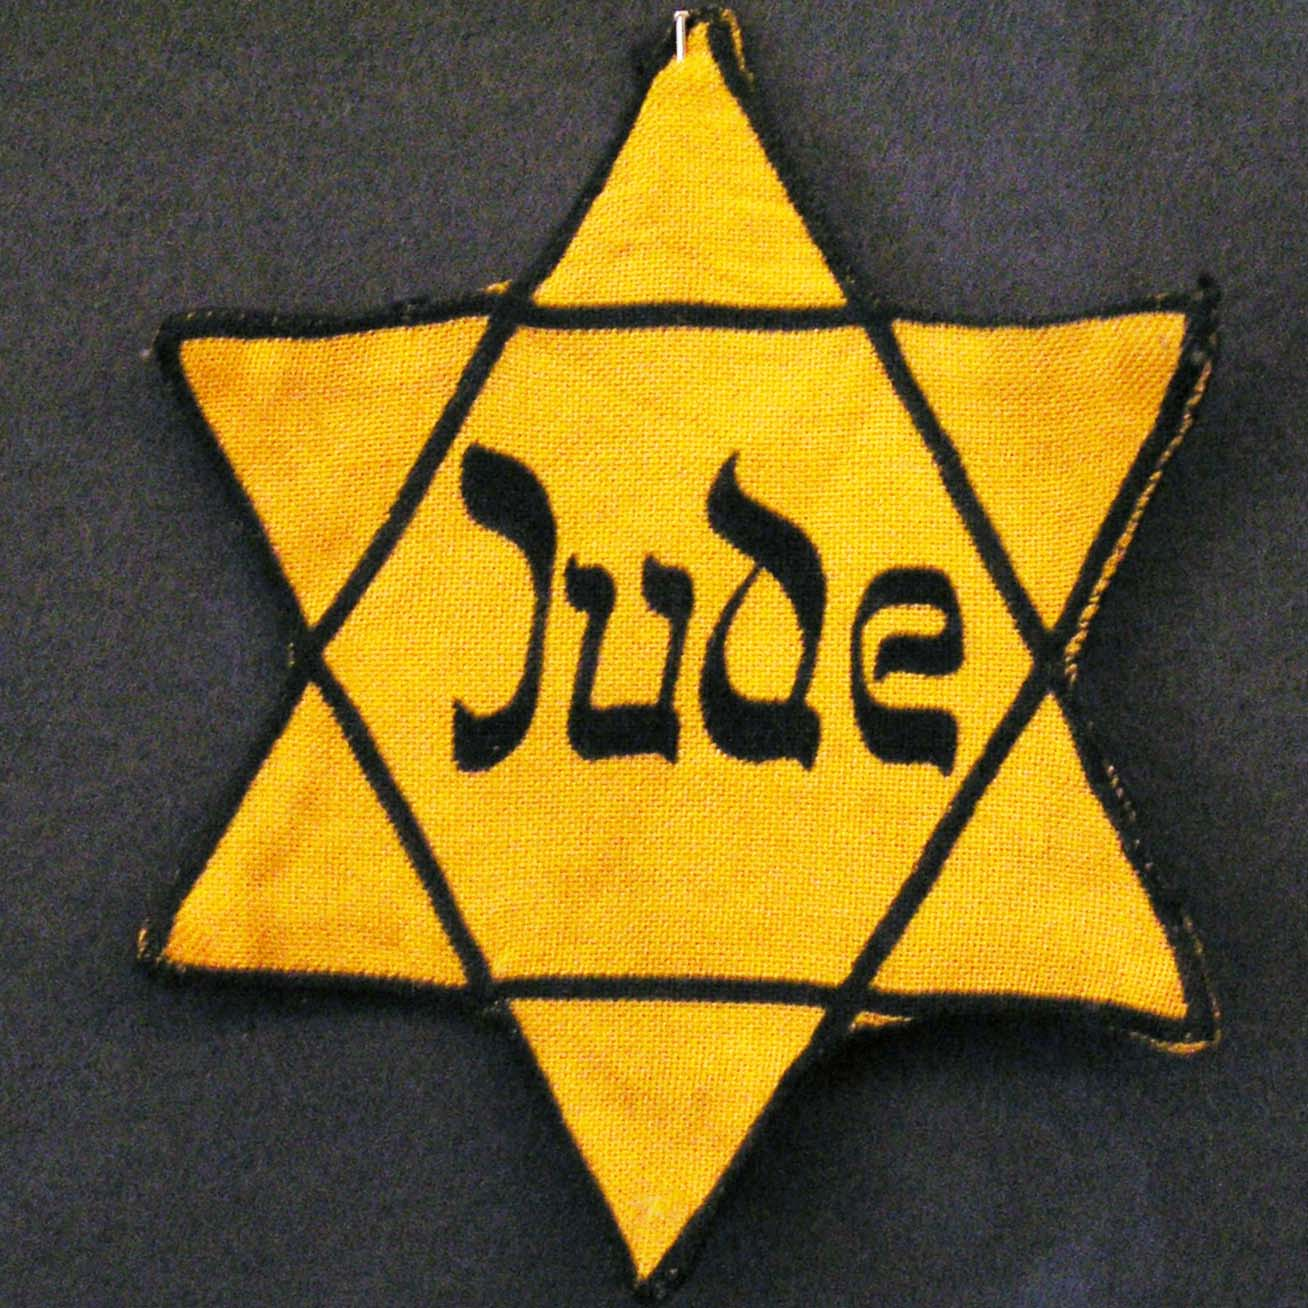 jewish singles in ireland The complete laws and regulations for marrying in ireland  that must be met to be married in ireland  of persons professing the jewish religion.